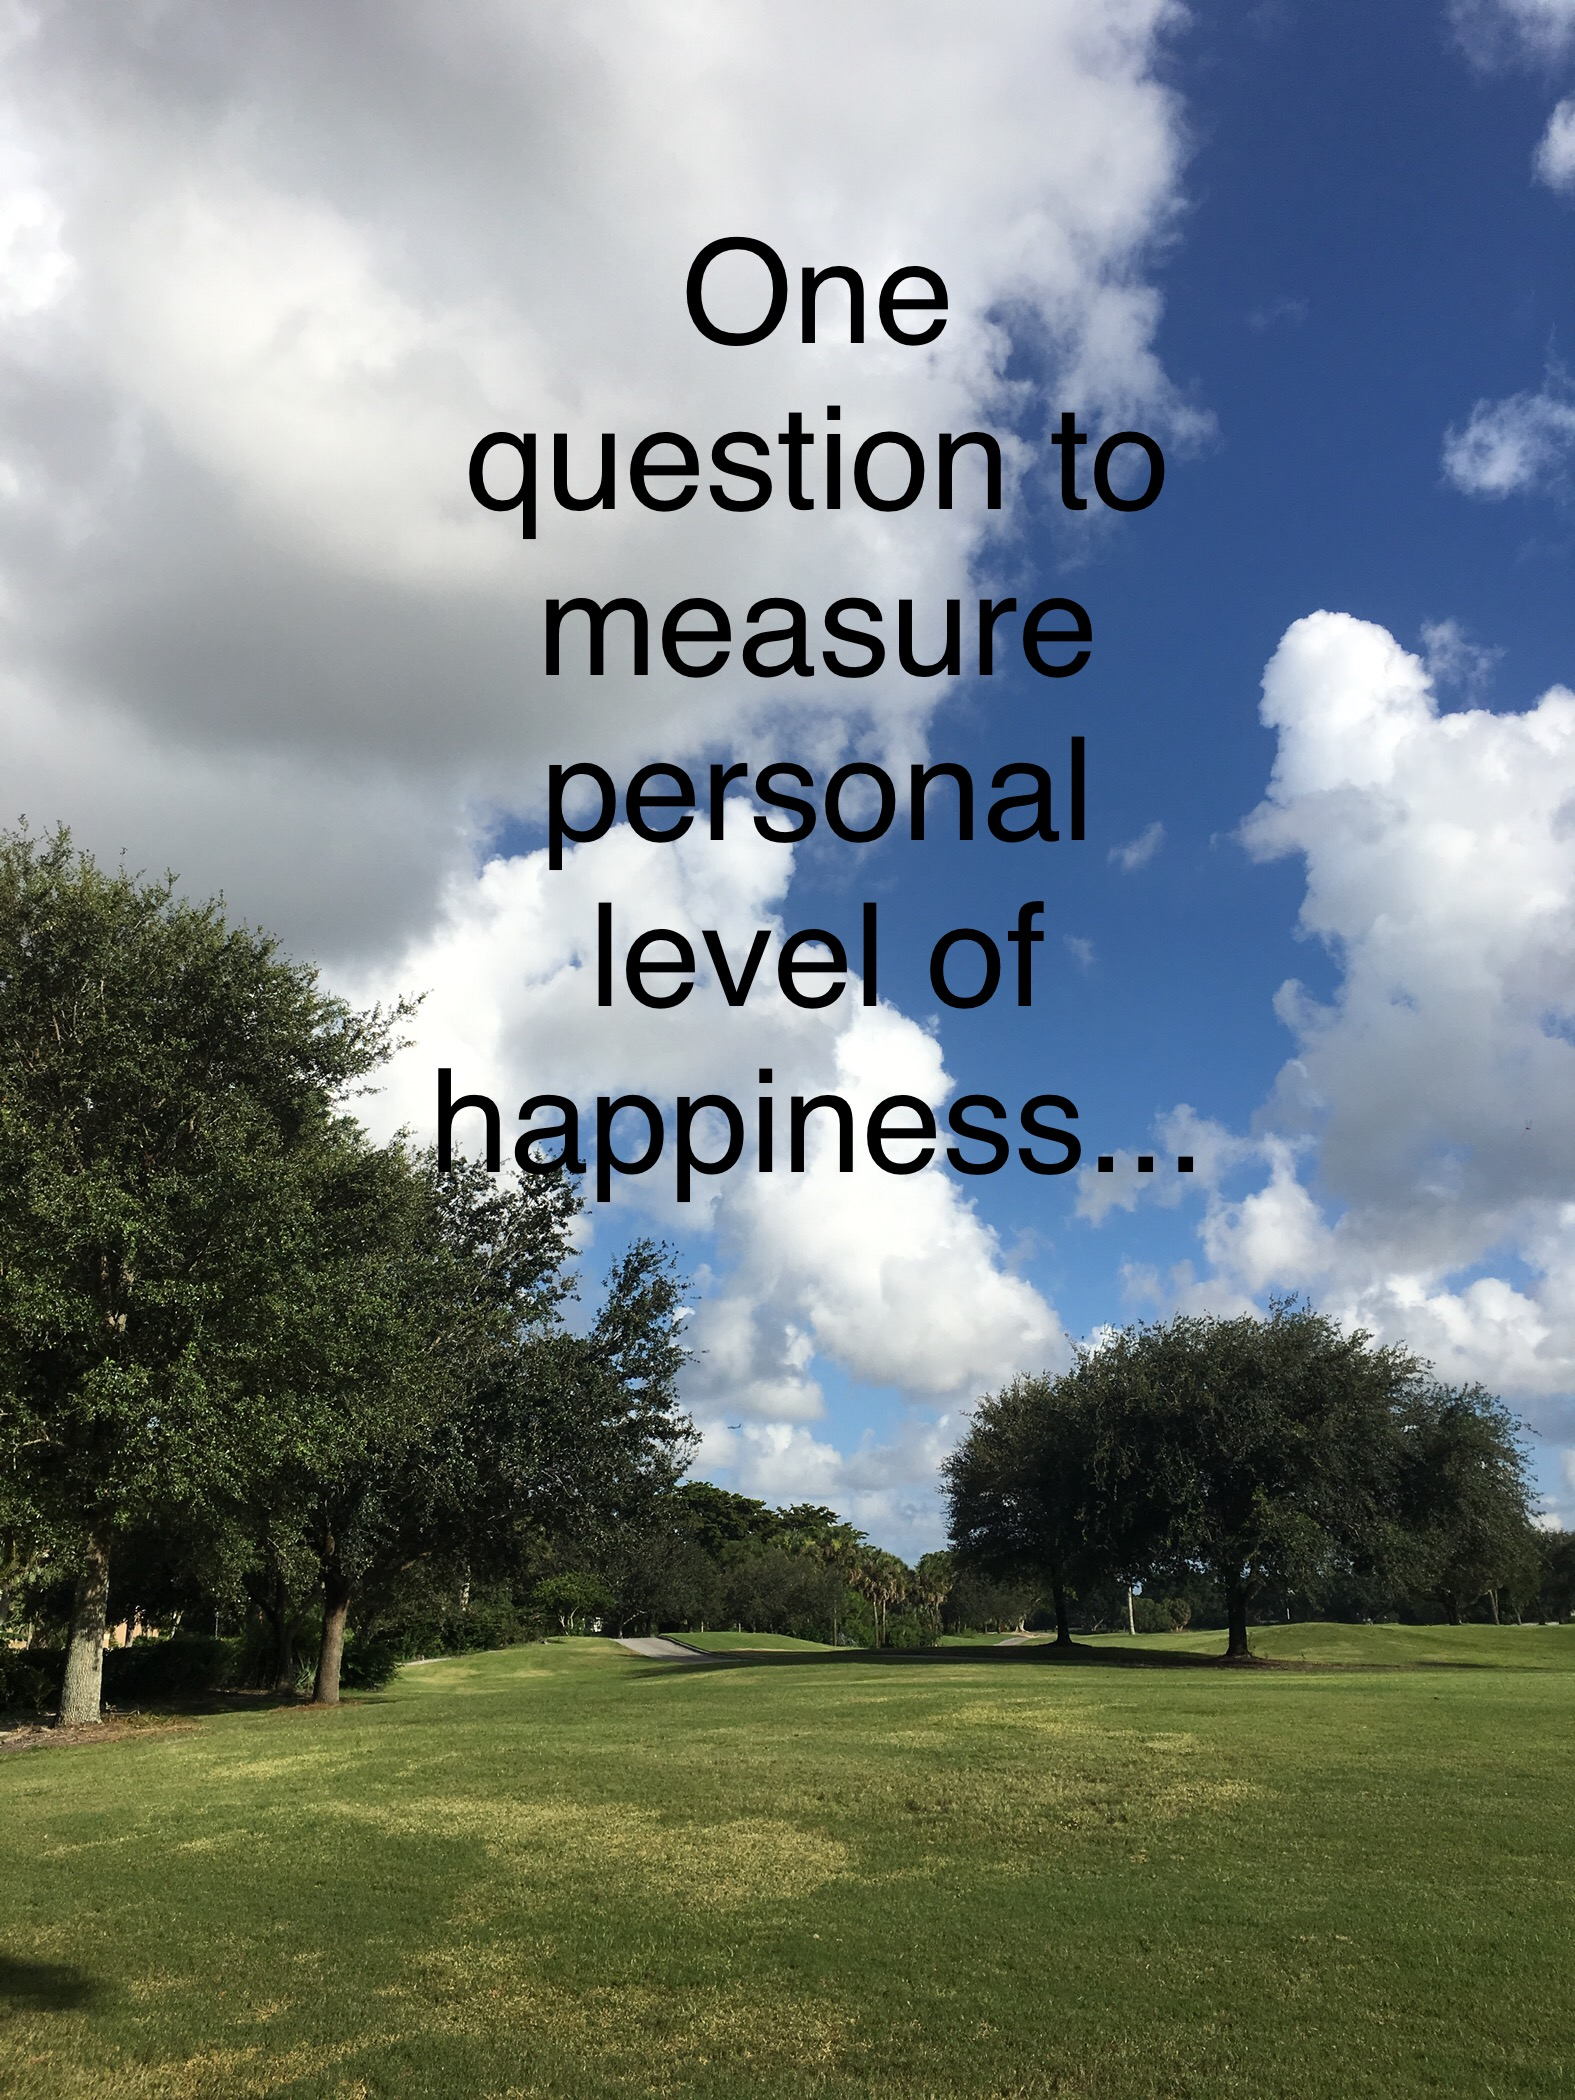 Only One Question Needed To Measure Personal Level Of Happiness